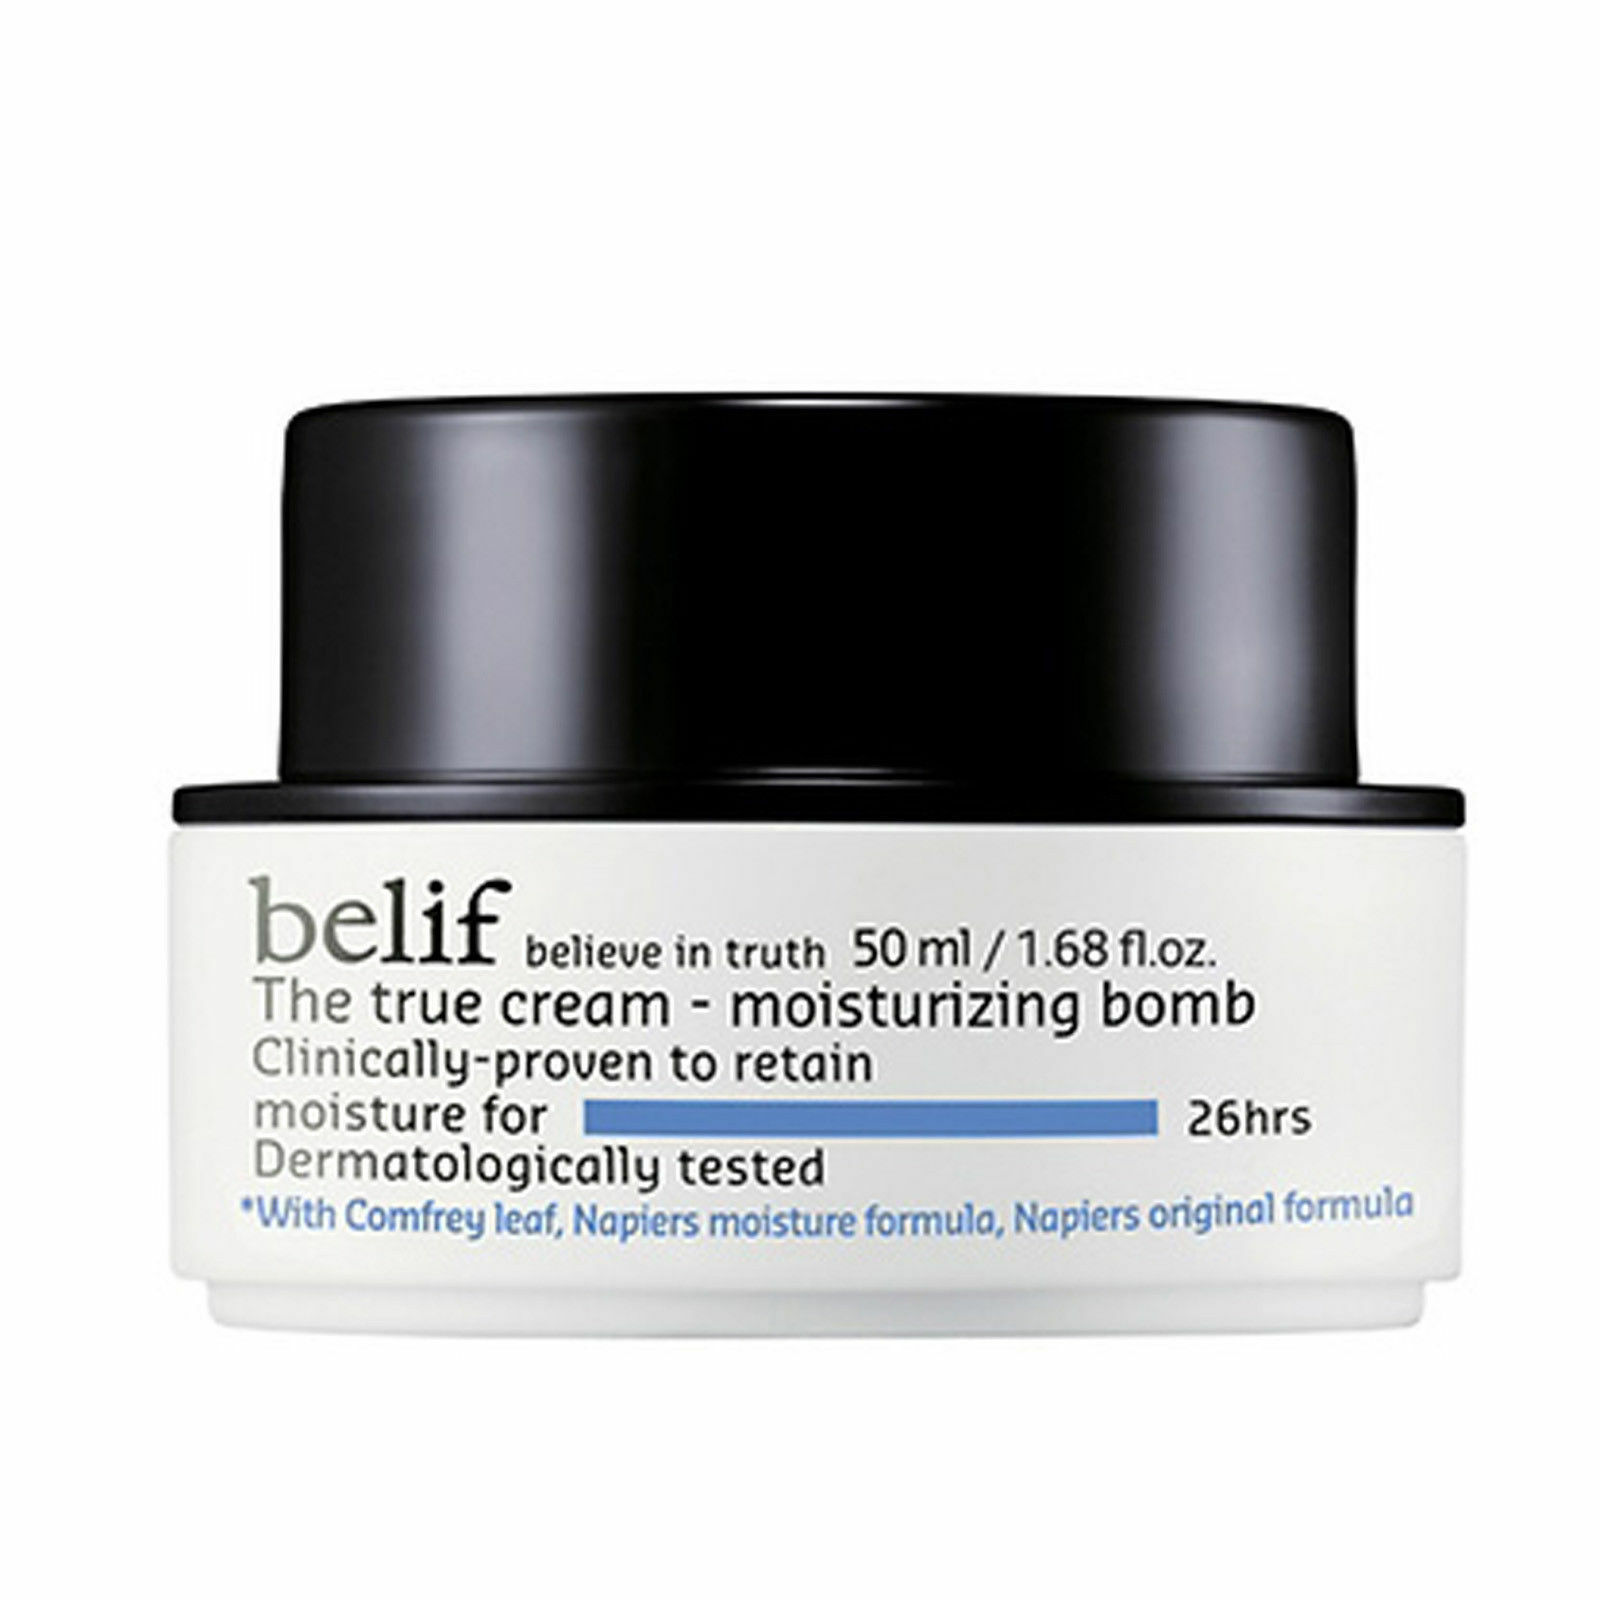 Crema hidratante The True Cream Moisturizing Bomb de Belif